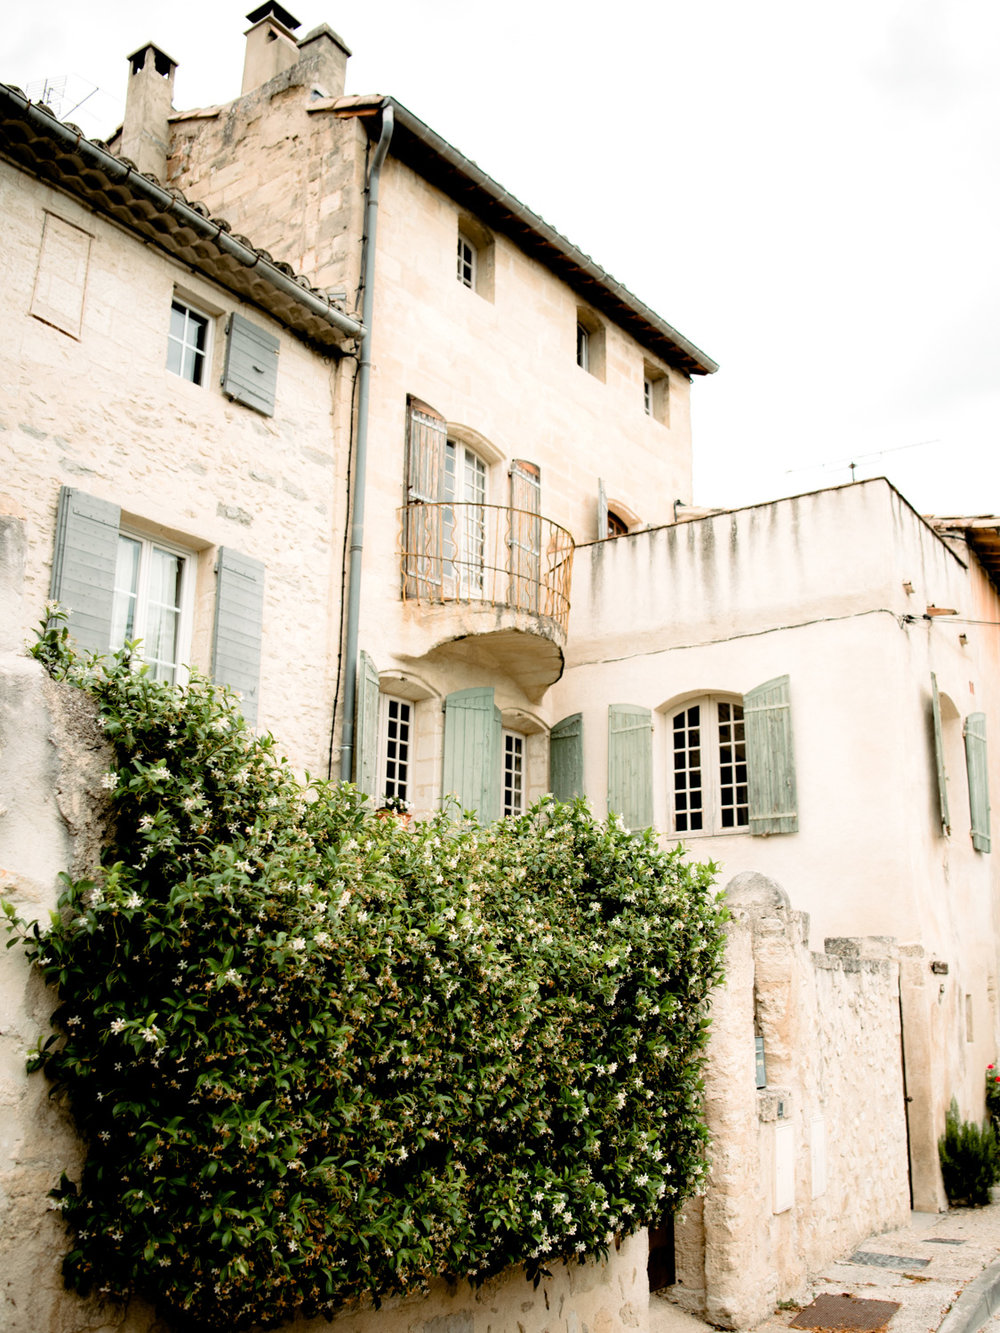 Old buildings with a balcony in Villeneuve-lès-Avignon, near Fort Saint-Andre